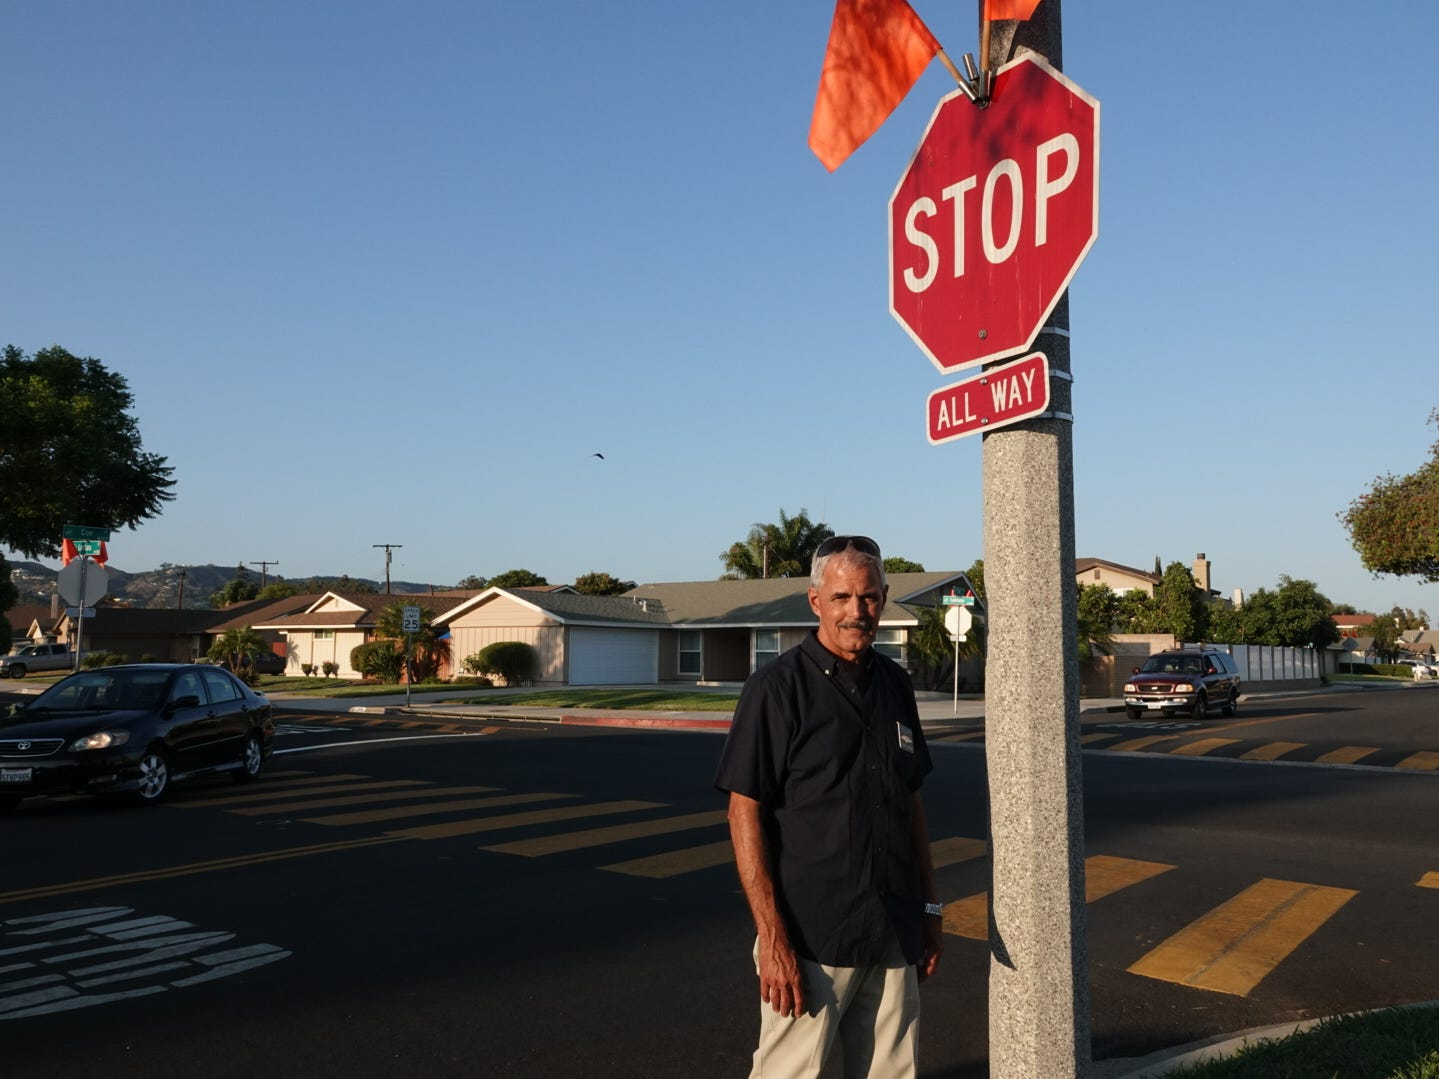 Since 1983, Camarillo resident Dennis Fandey has been asking for a four-way stop sign at Lantana and Coe streets. The city recently installed the signs after an SUV crashed into Fandey's house on Father's Day.